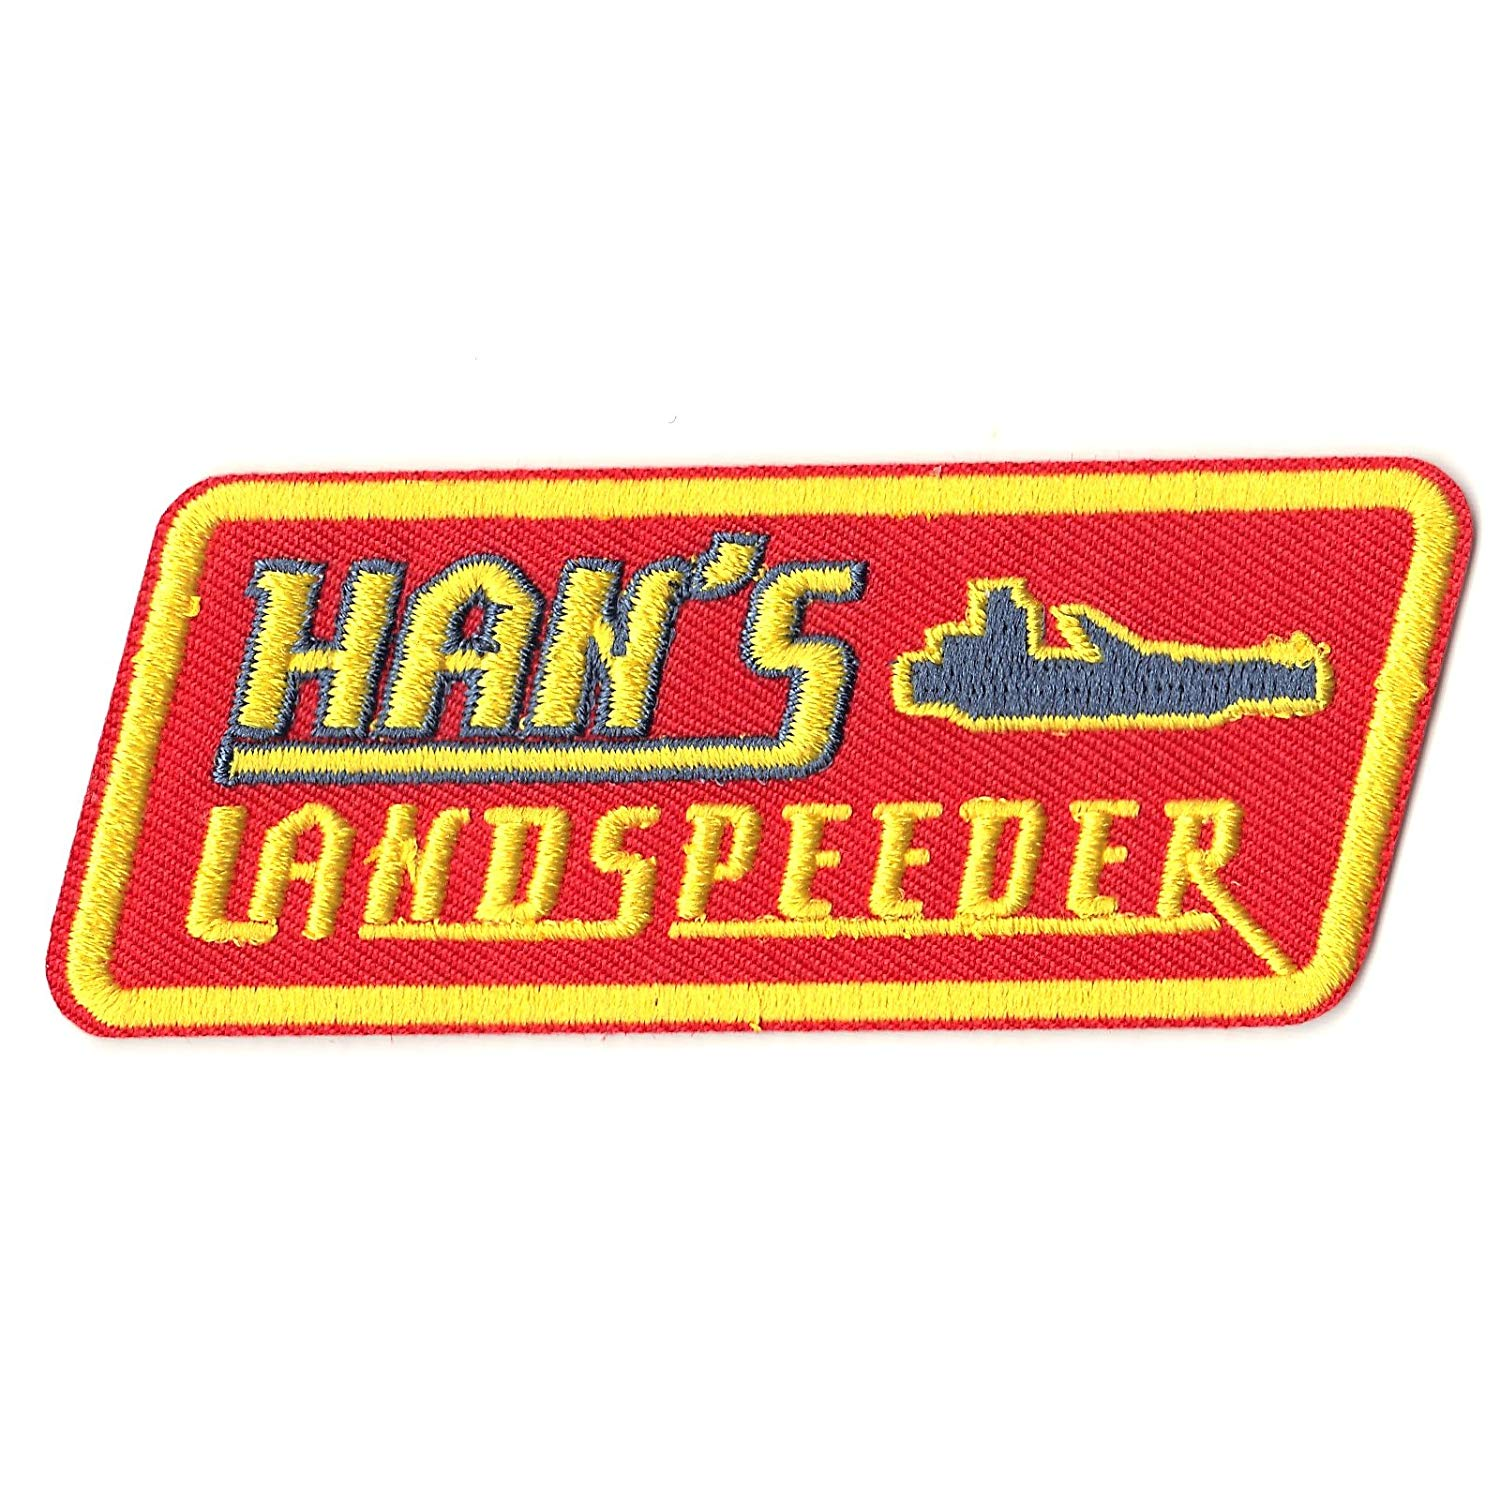 Solo: ASWS Han's Landspeeder Embroidered Iron-On Patch 2